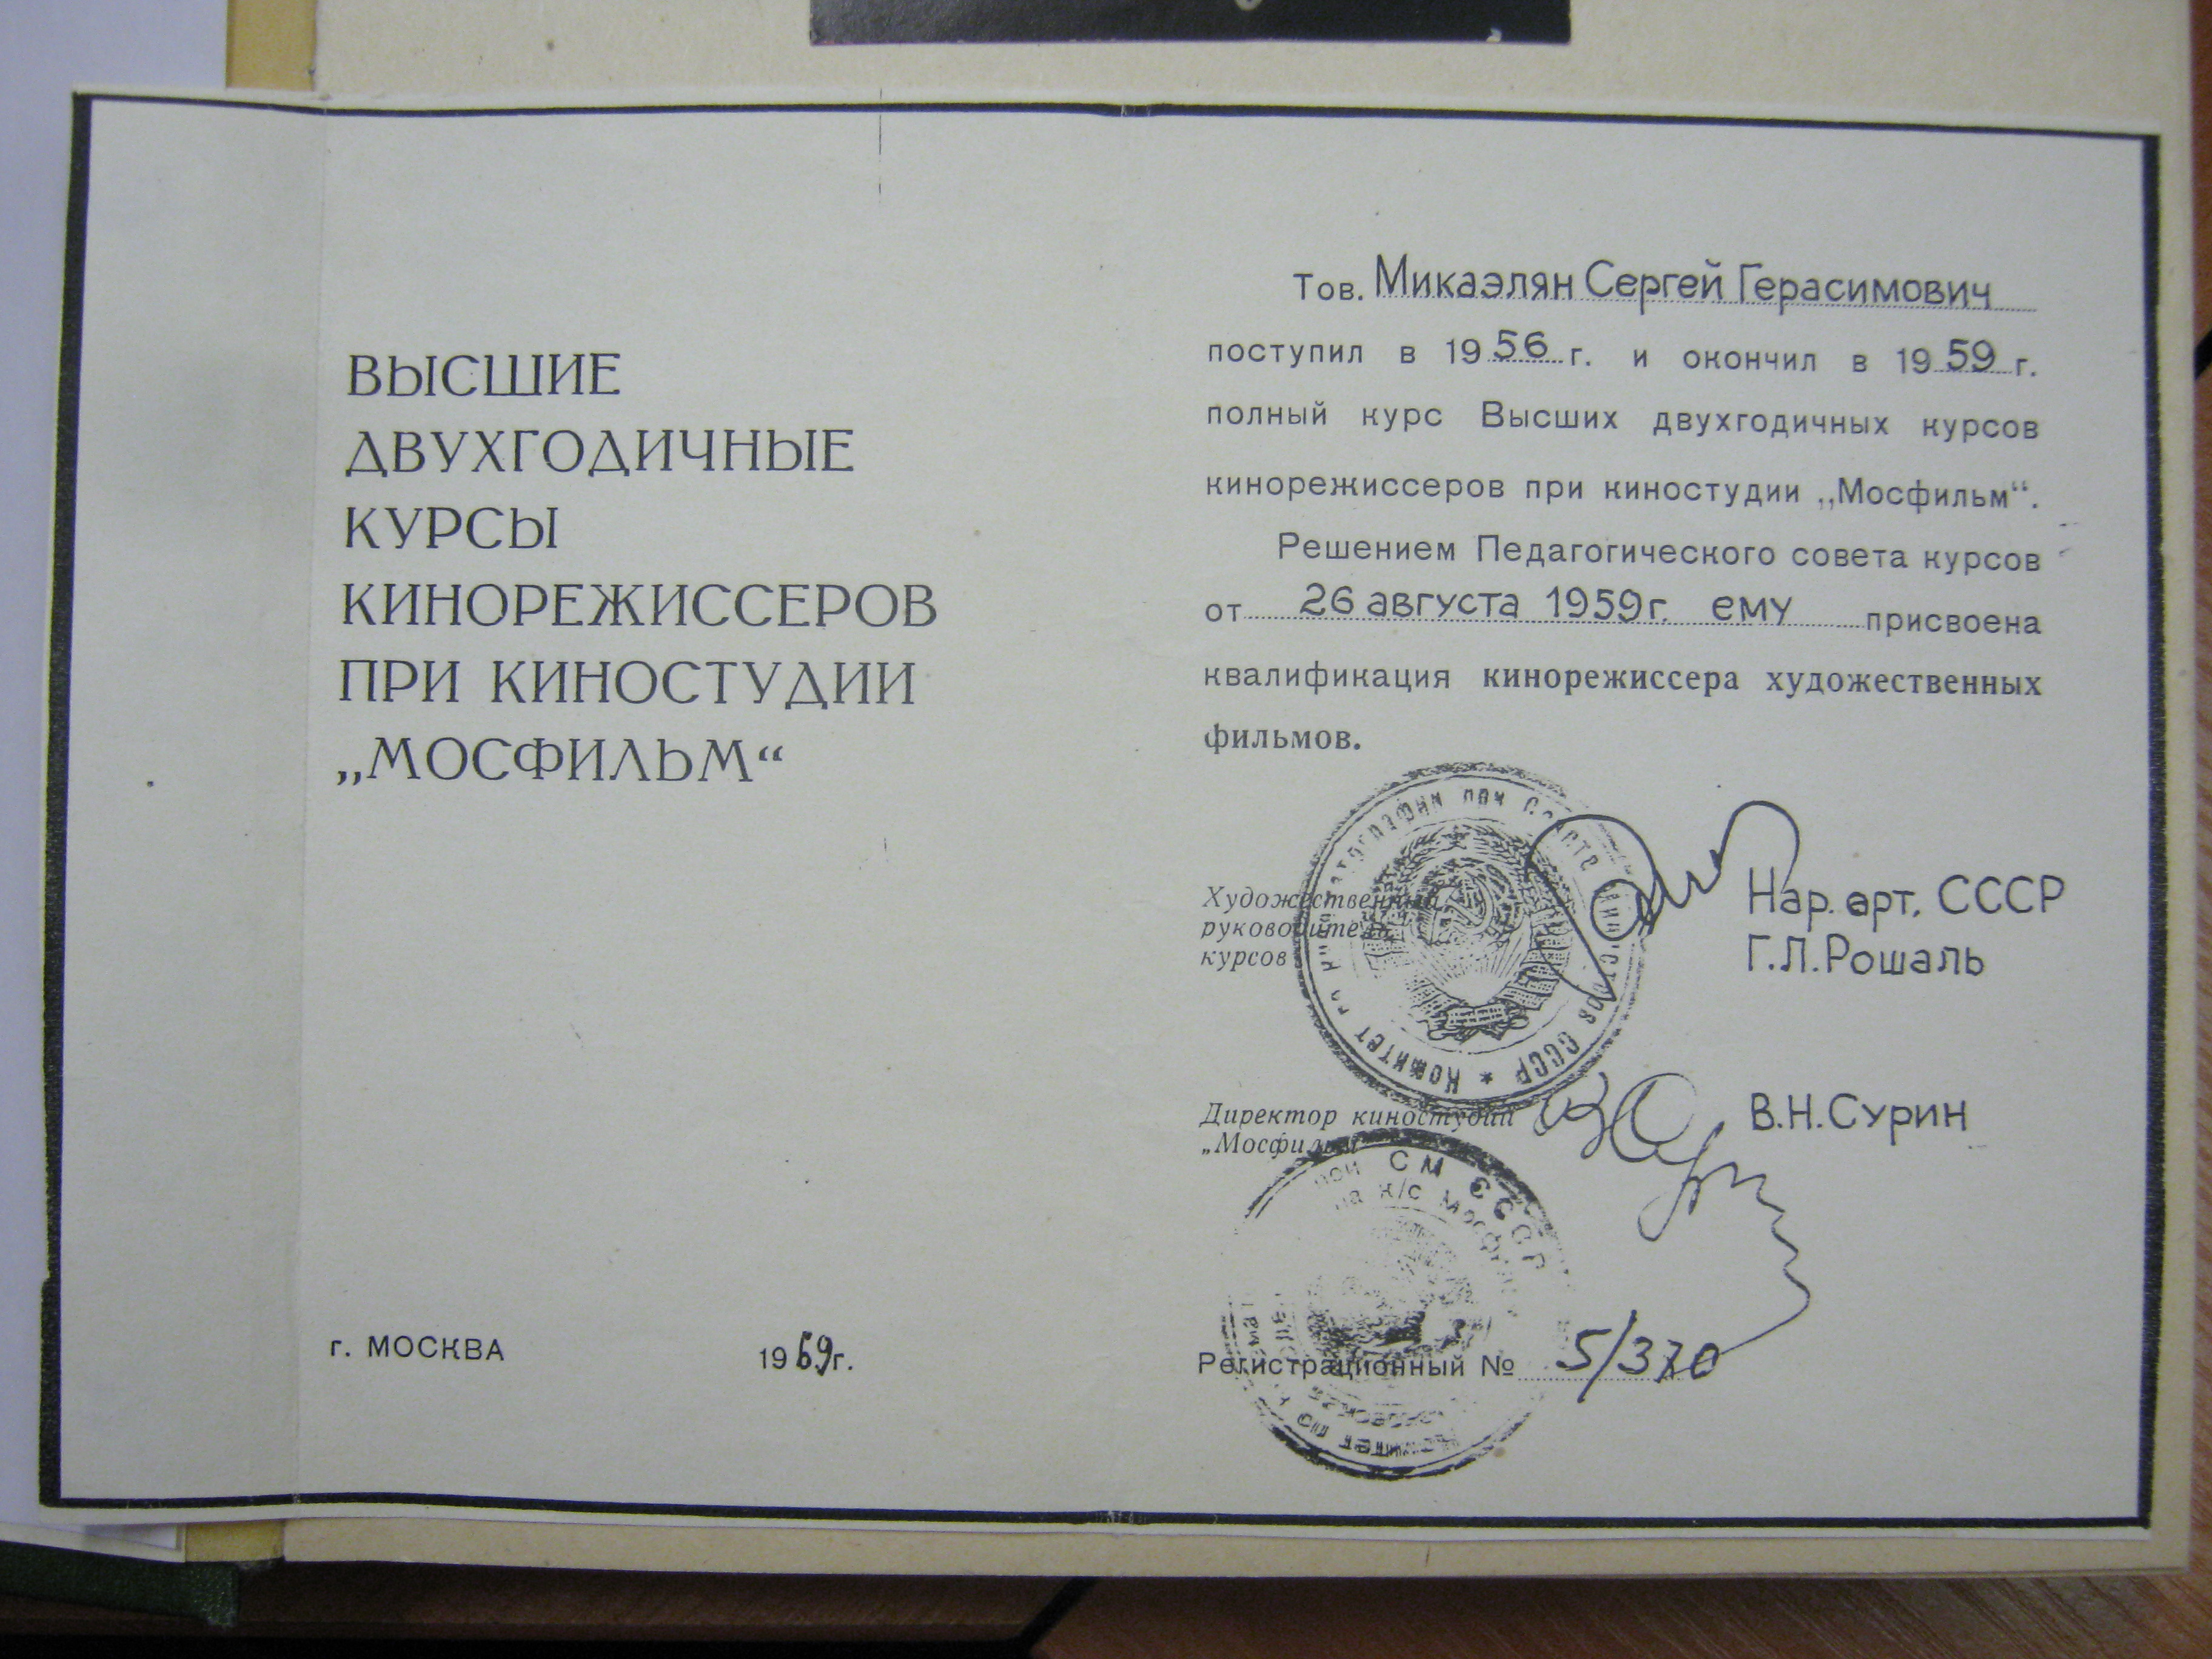 http://www.spbarchives.ru/documents/10157/466a6e40-d3f8-453d-b98b-dfcbf0094516